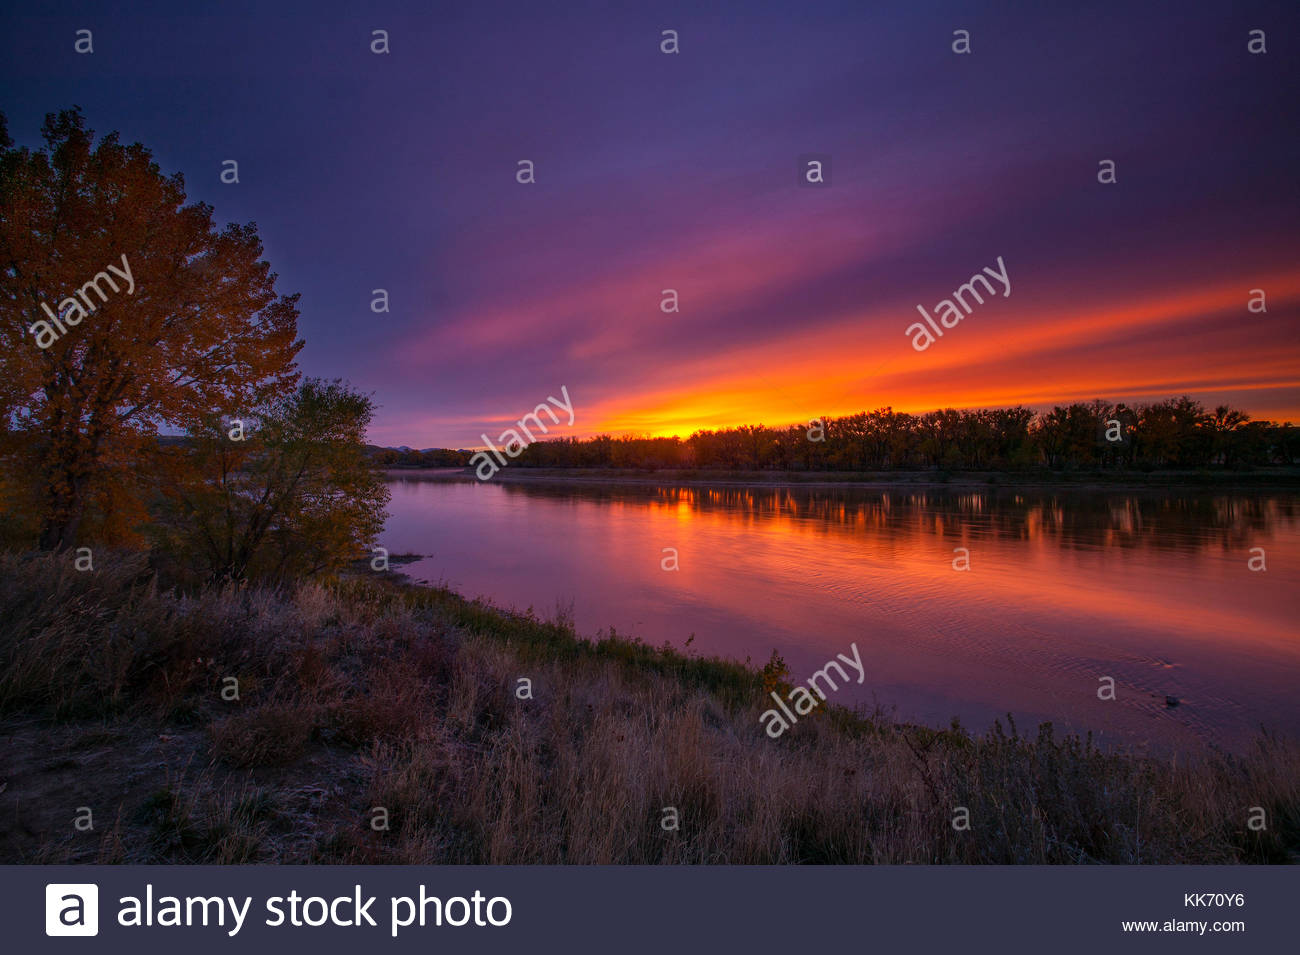 An autumn sunrise reddens the sky over the Missouri River at Coal Banks Landing in the Upper Missouri River Breaks - Stock Image